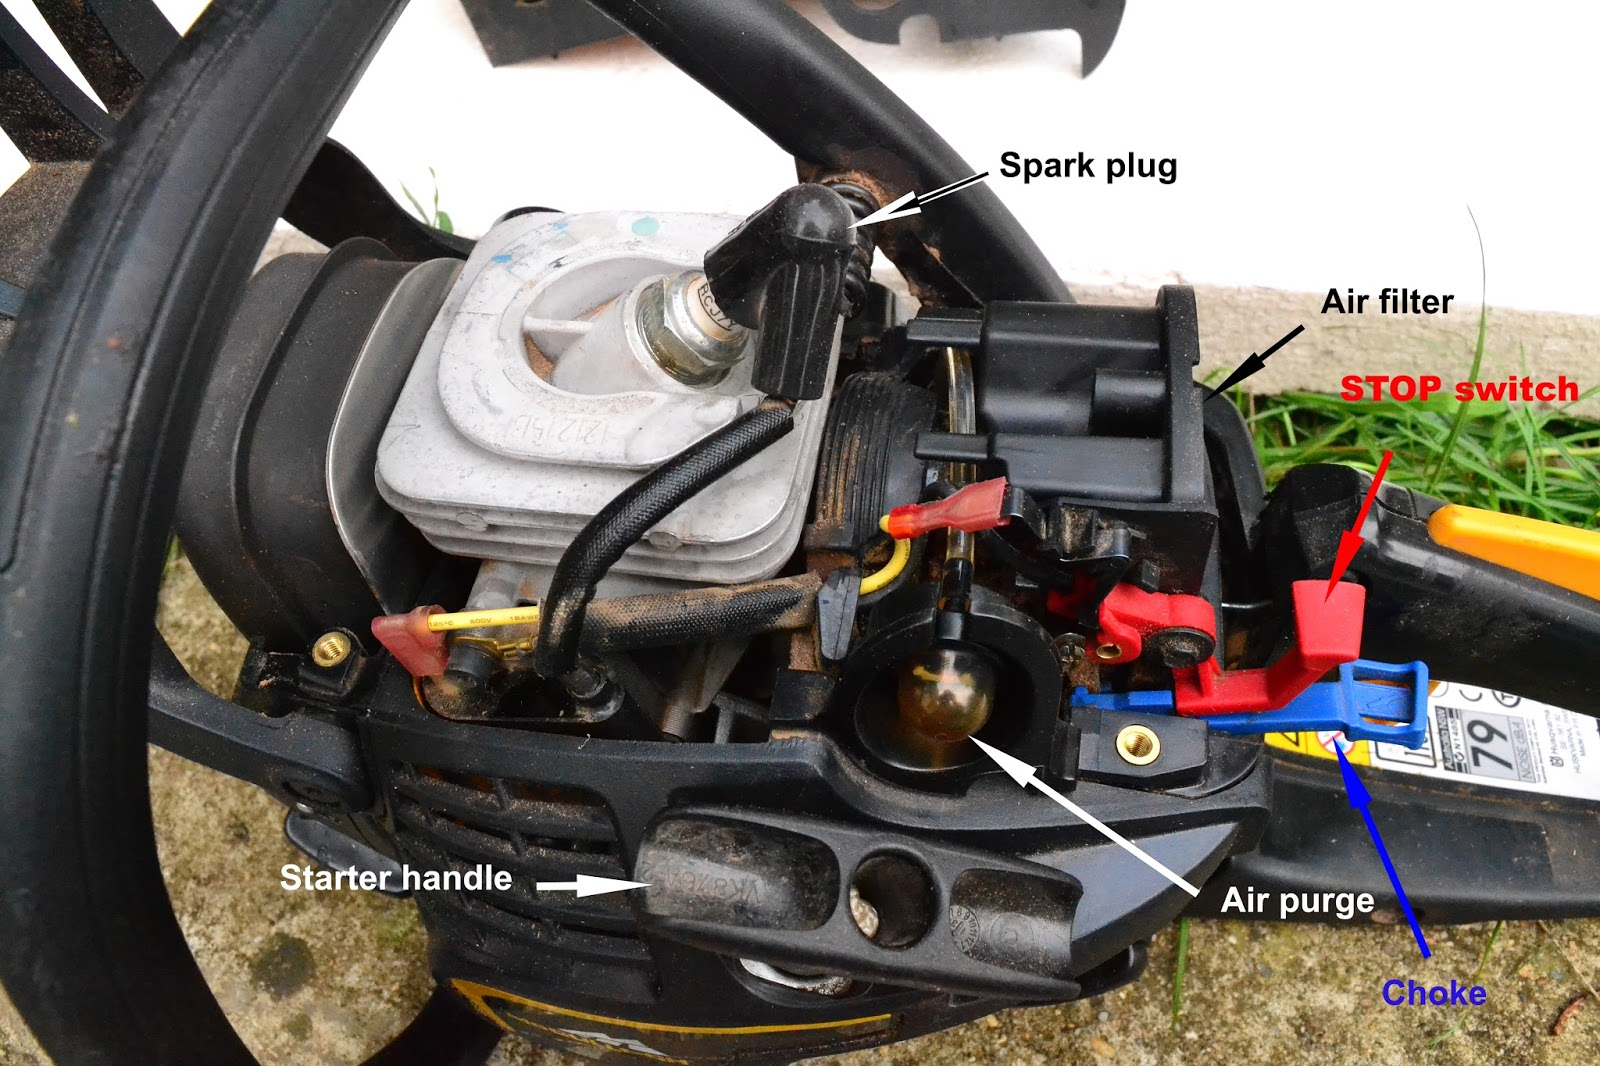 medium resolution of main components under the cover note not all parts are listed